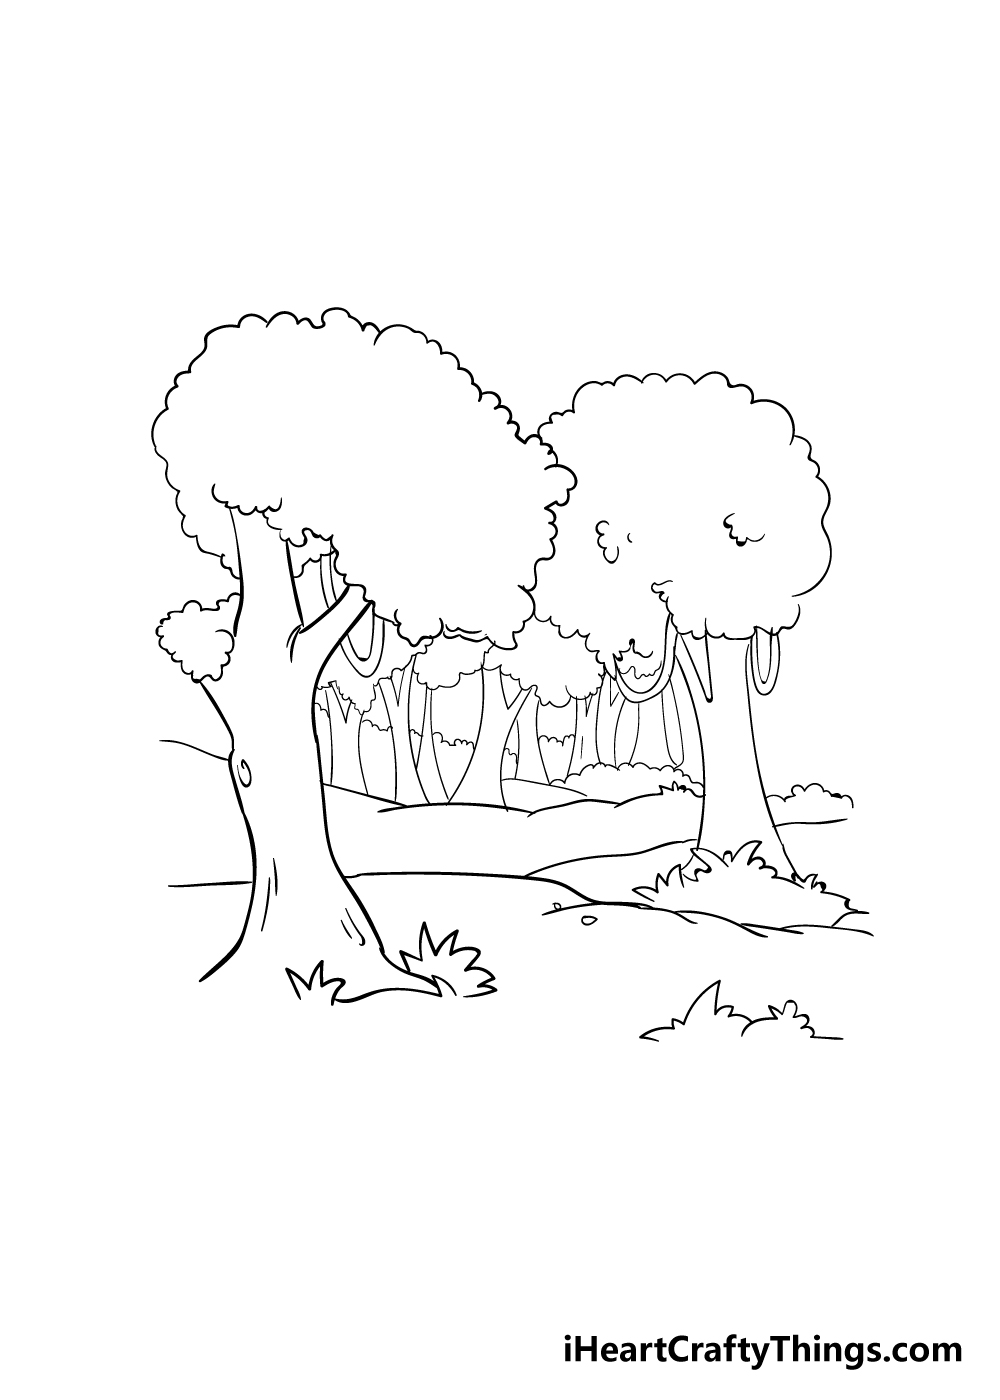 forest drawing step 4